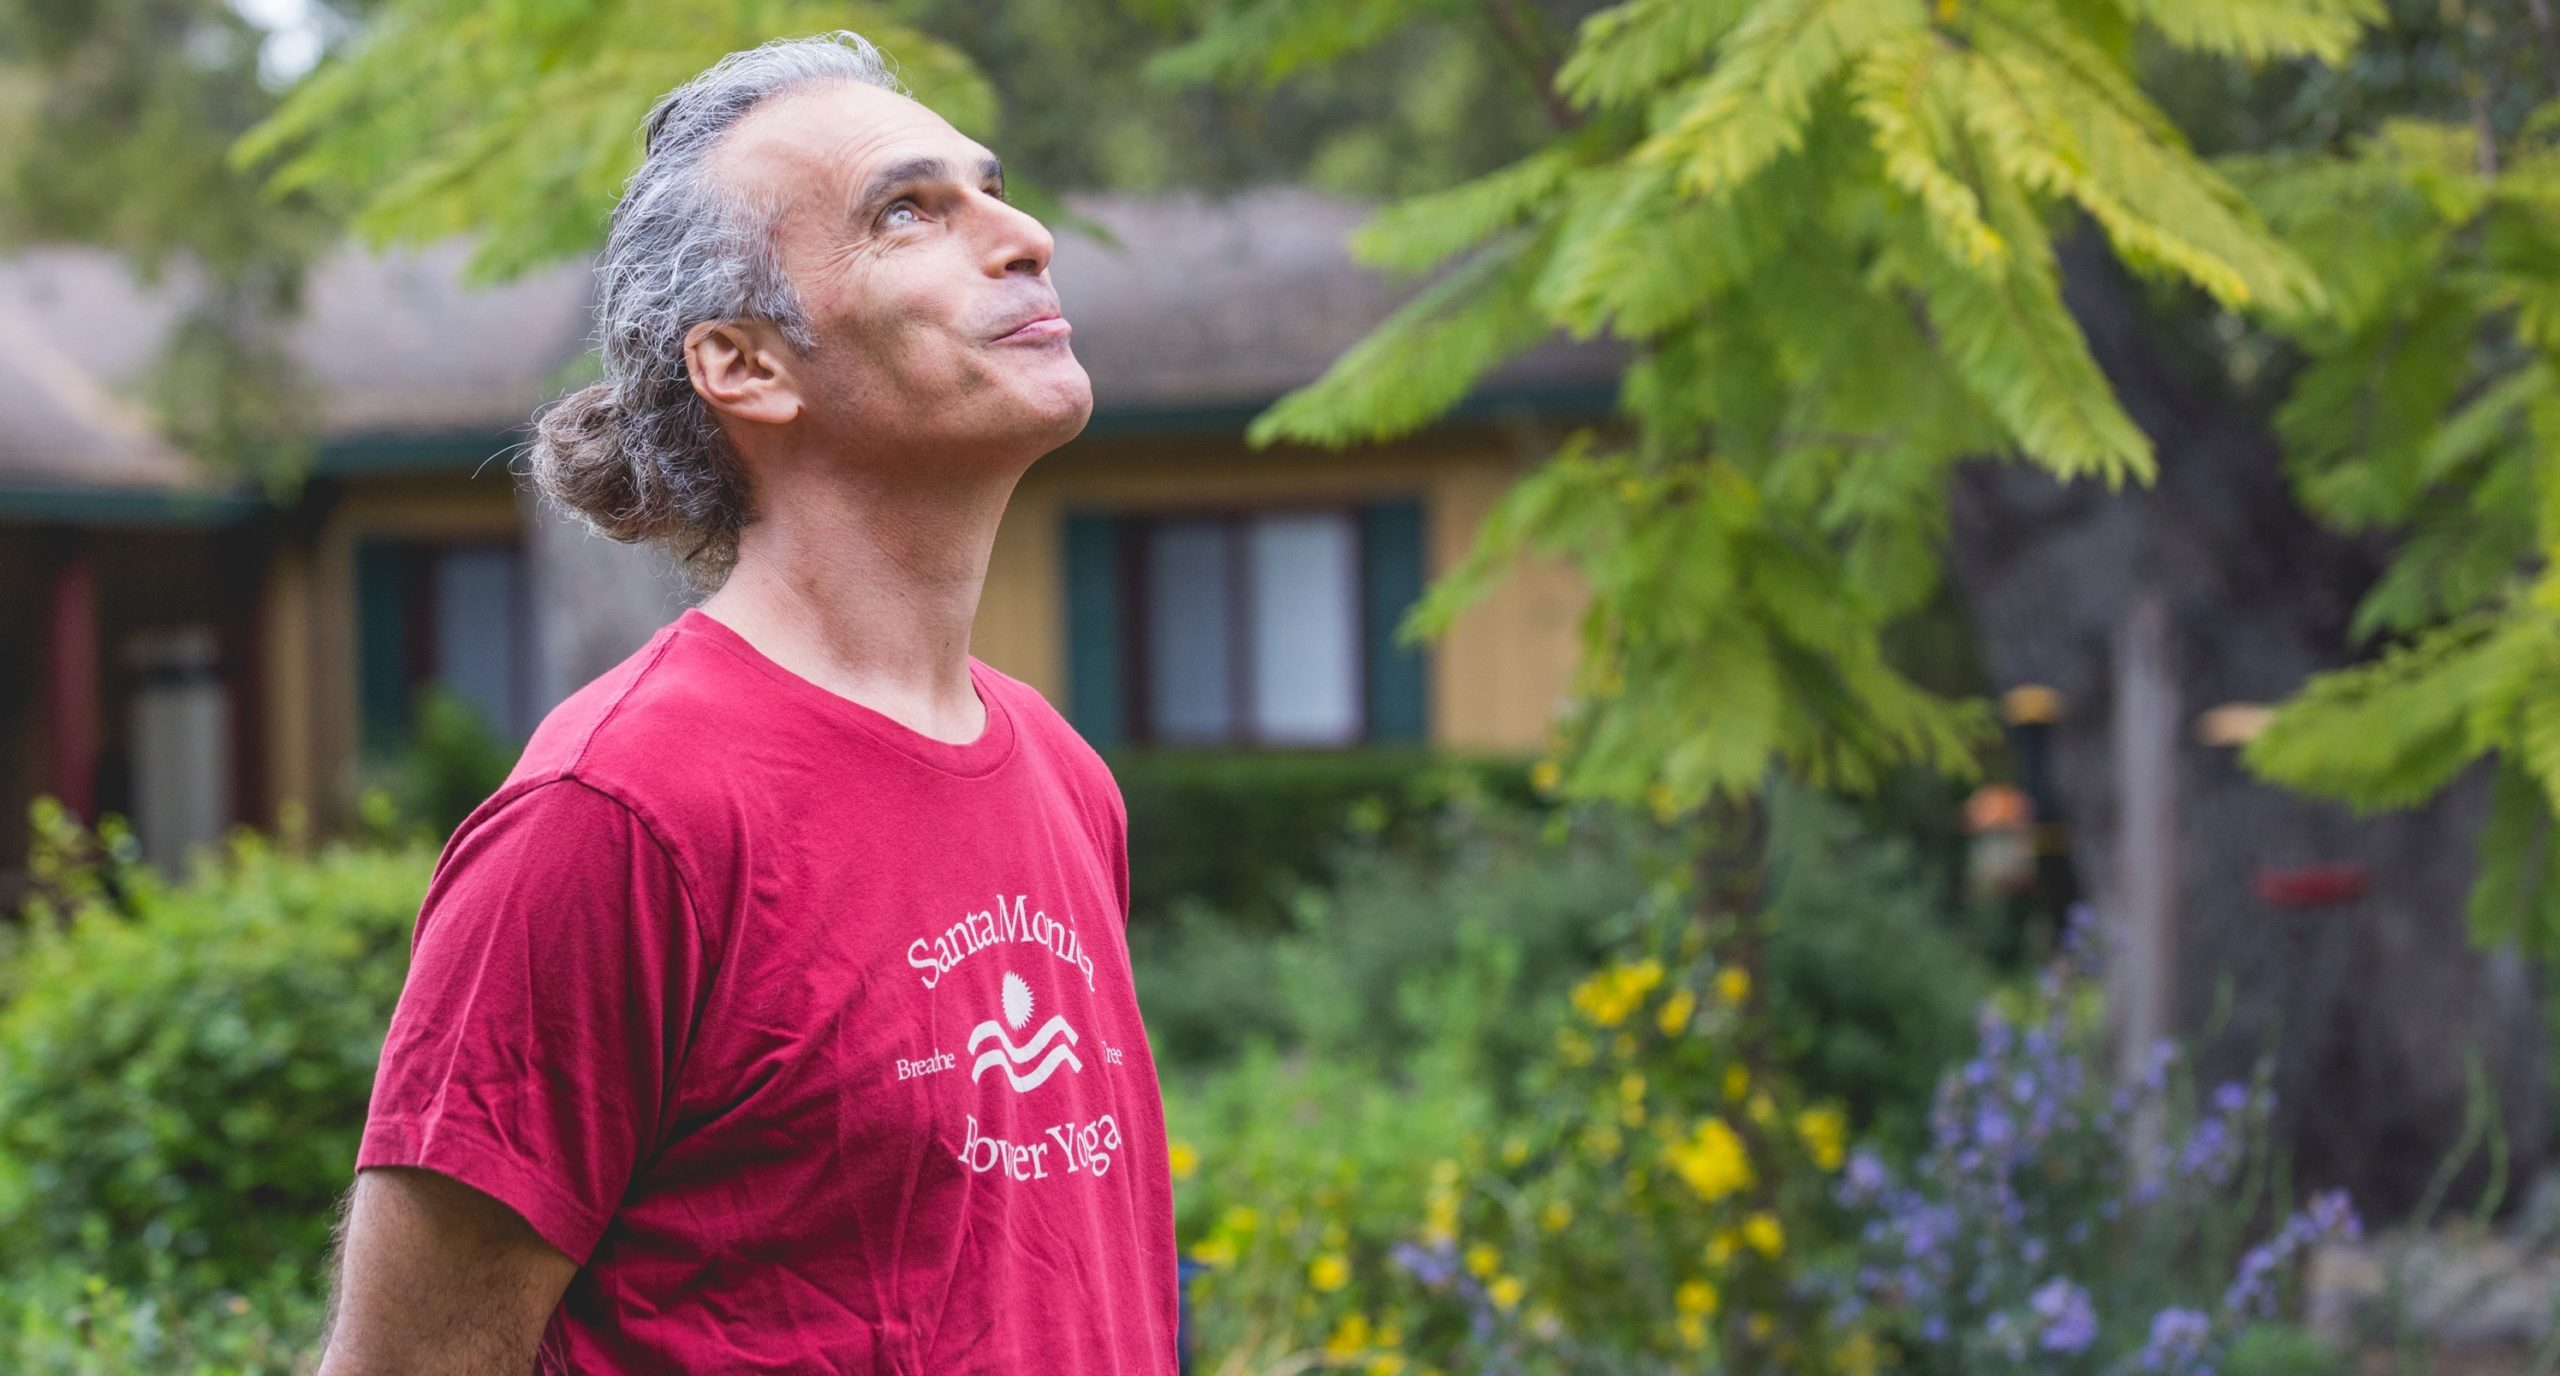 Bryan Kest wearing a red t-shirt in a garden looking up.